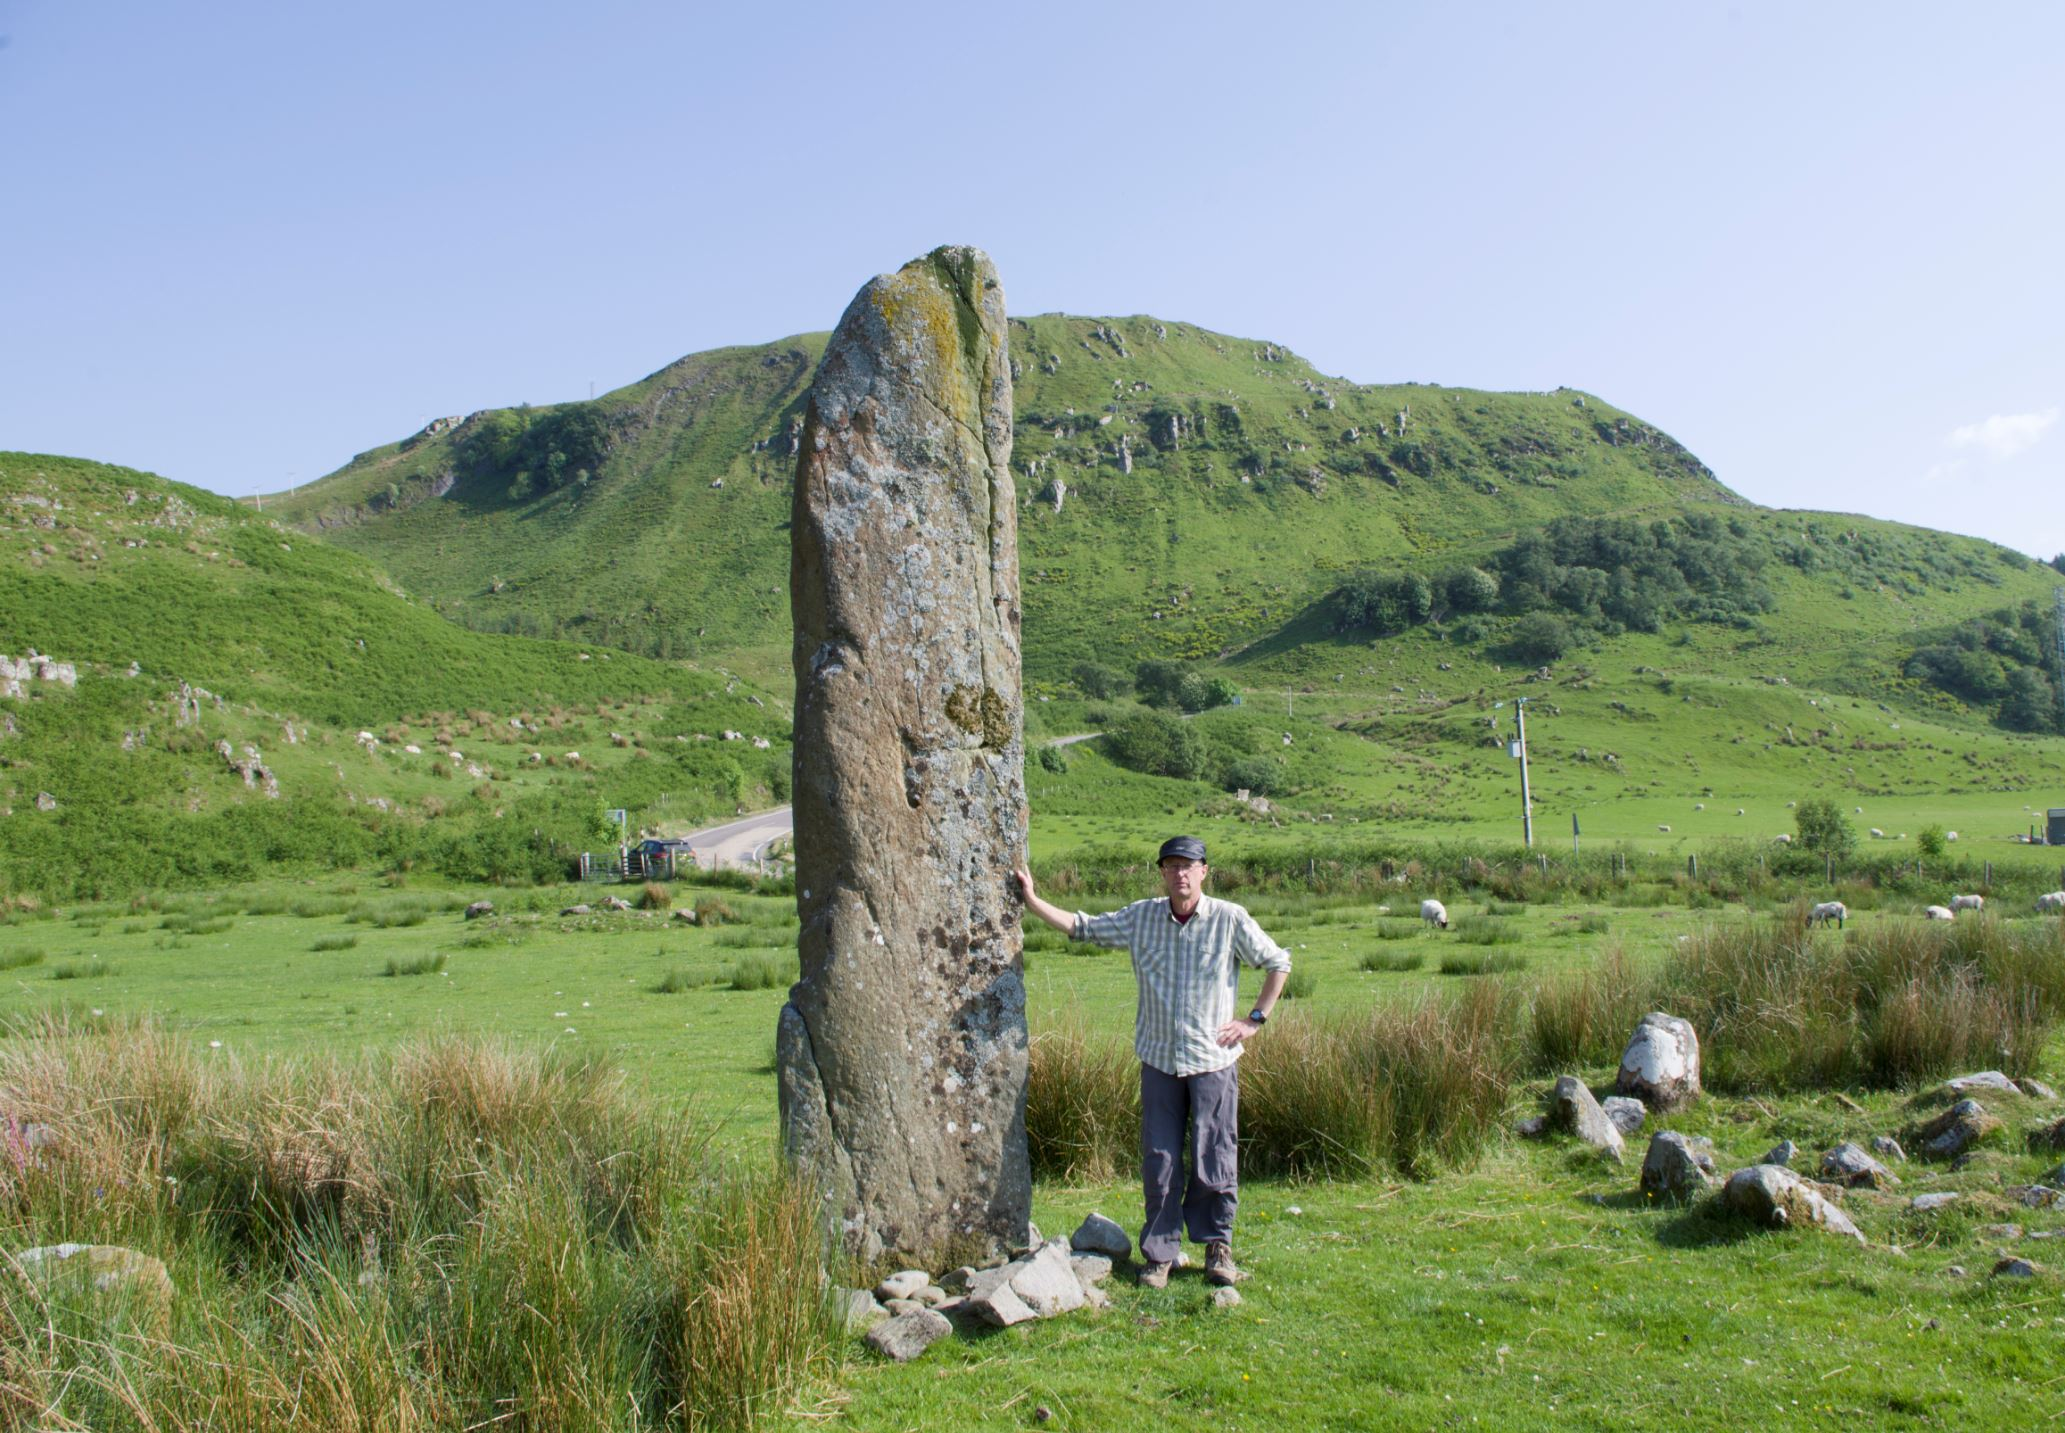 The standing stone at Kintraw, Argyll